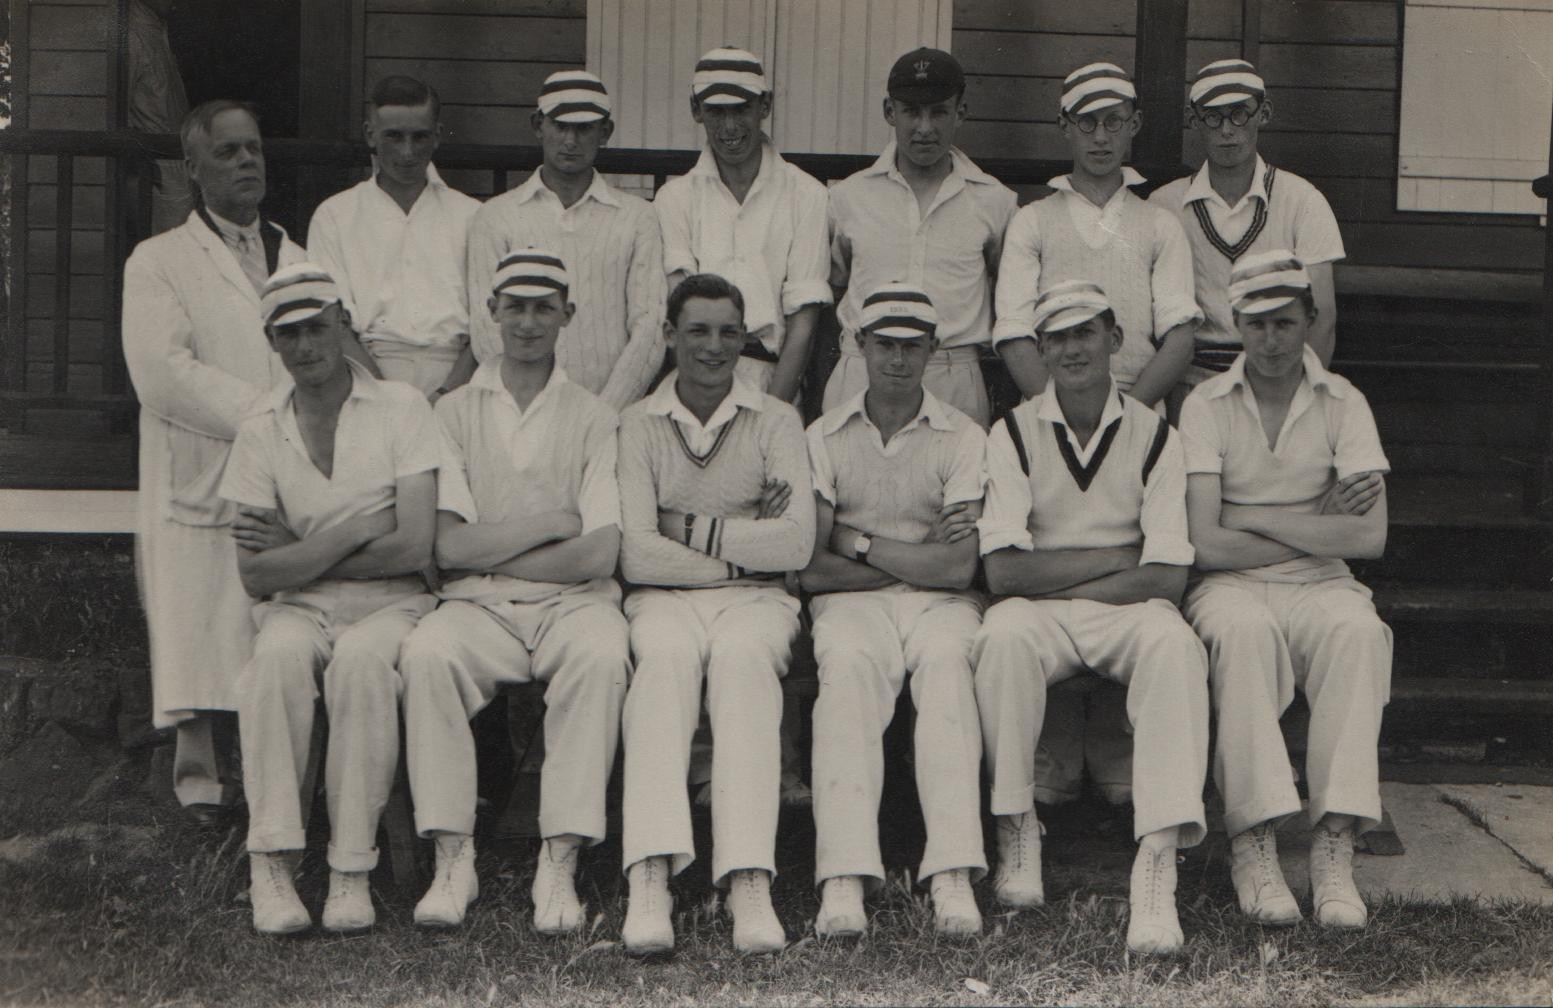 1937 Southend High School cricket 1st XI David second on right, back row